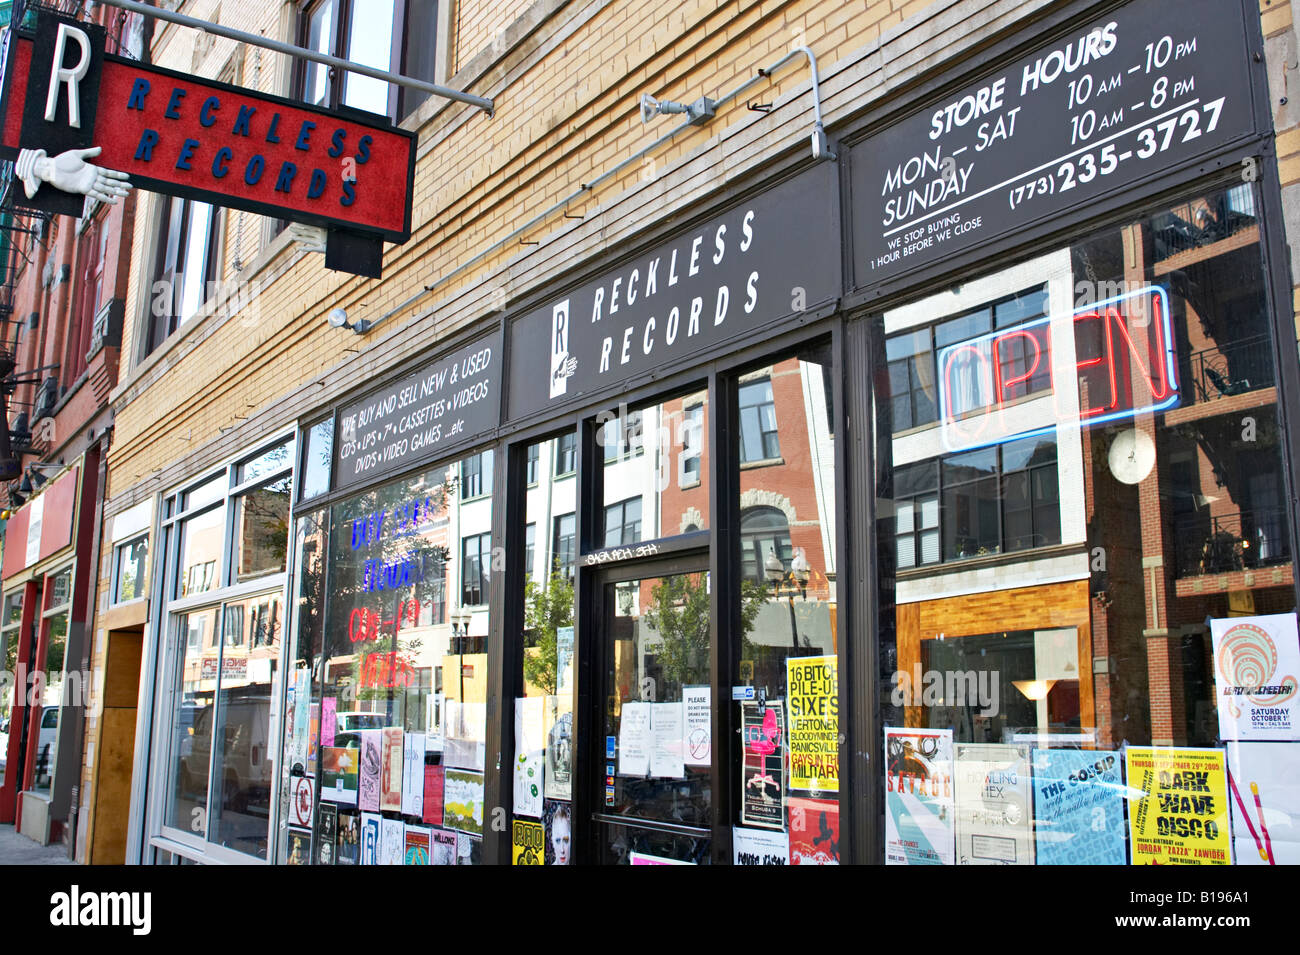 Illinois Chicago Reckless Records Store Windows And Sign